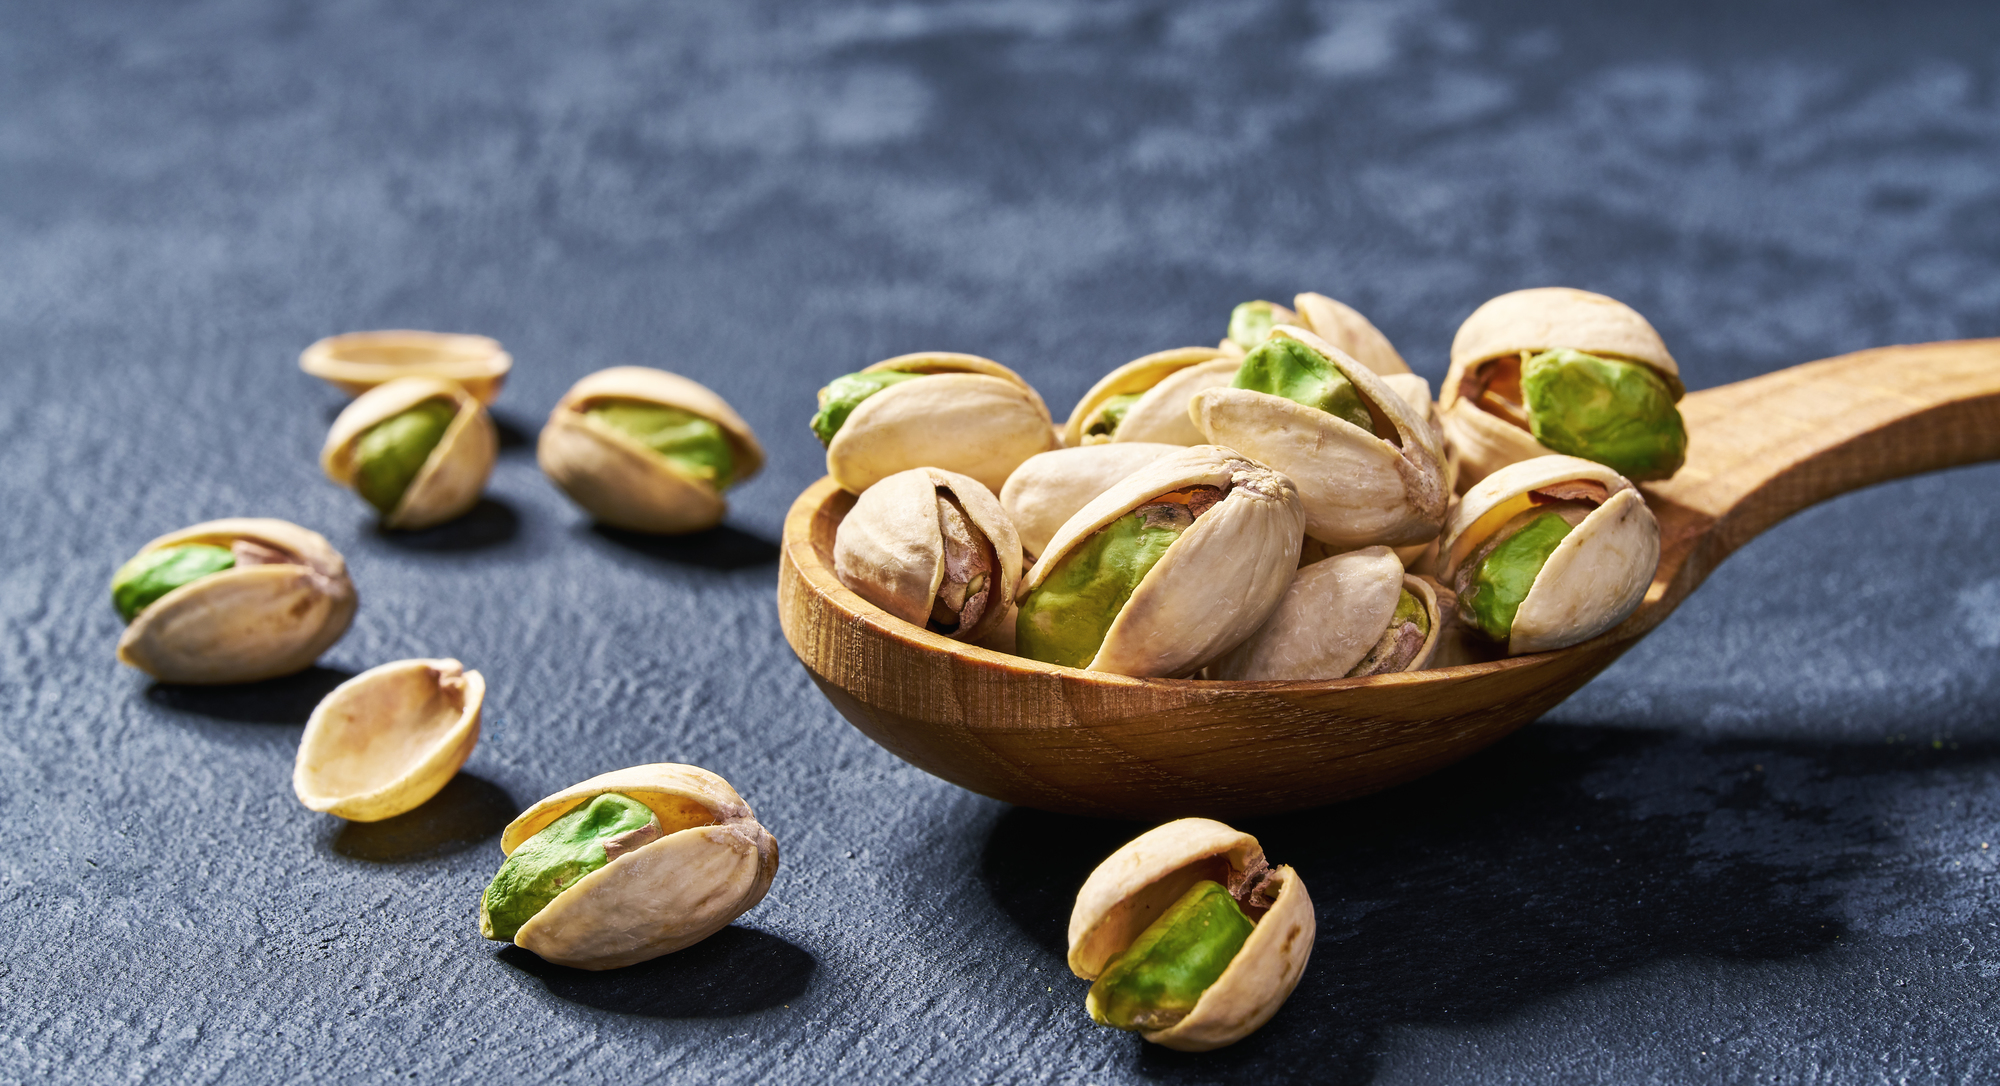 Pistachios in wooden spoon on black table, macro shot.